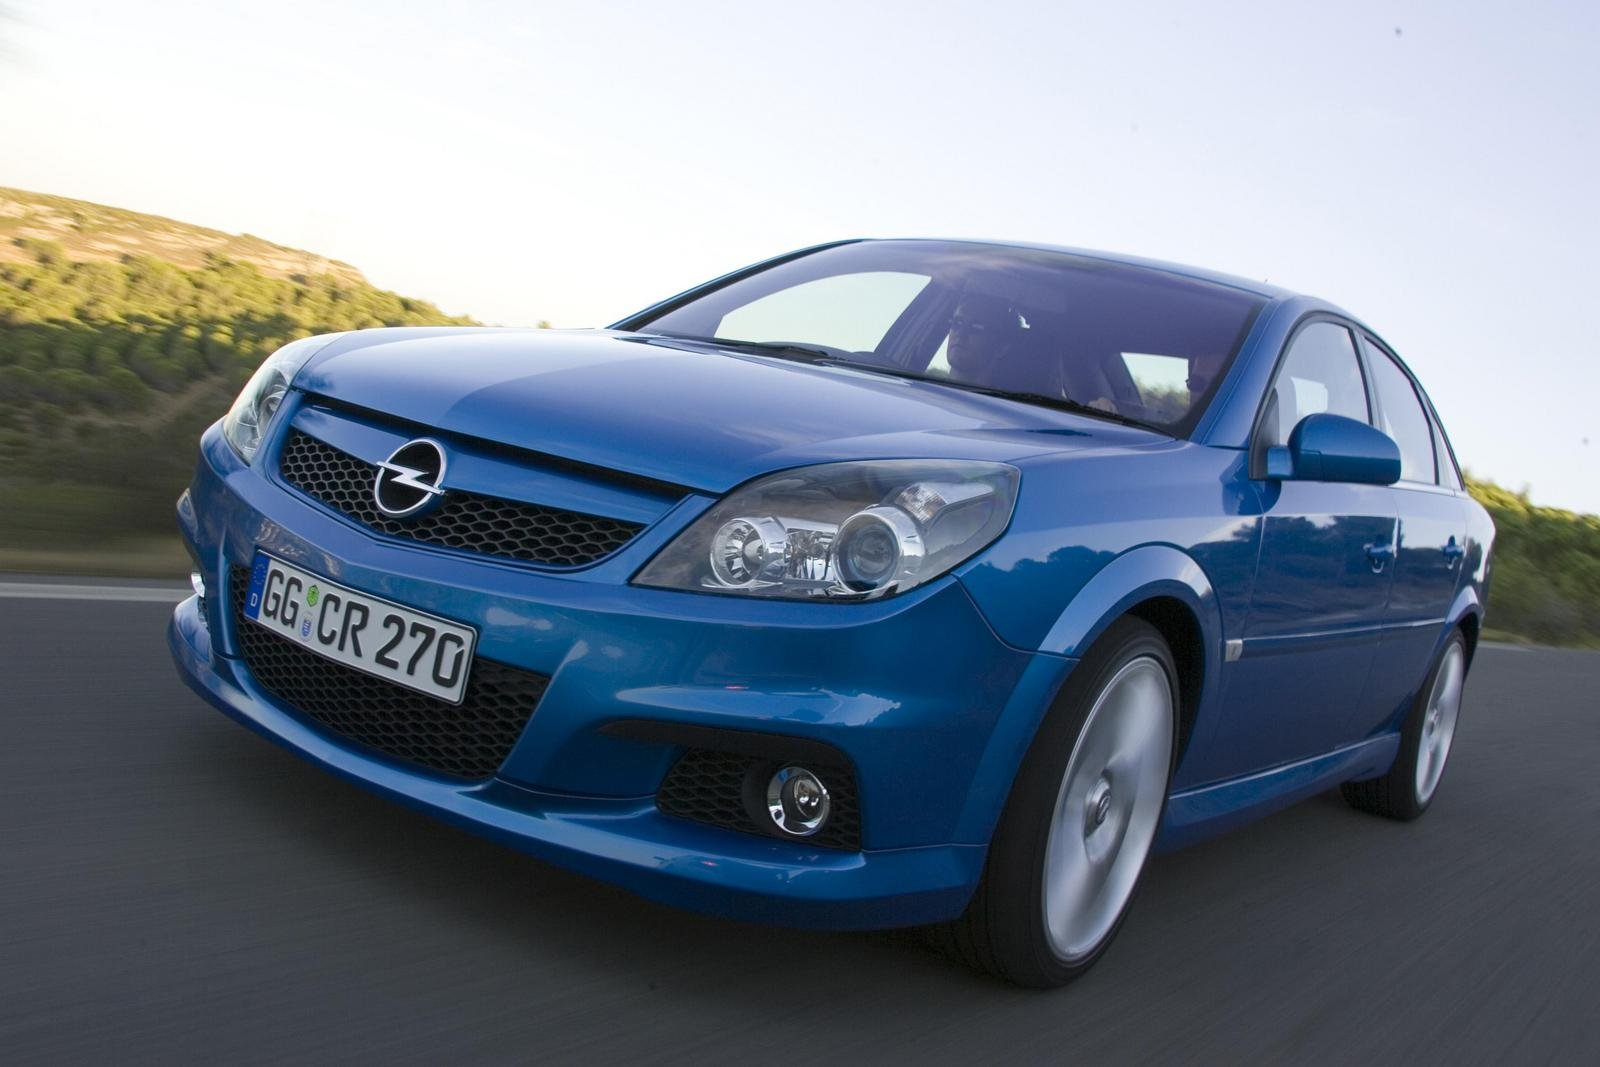 2008 Opel Vectra Opc Picture 190628 Car Review Top Speed